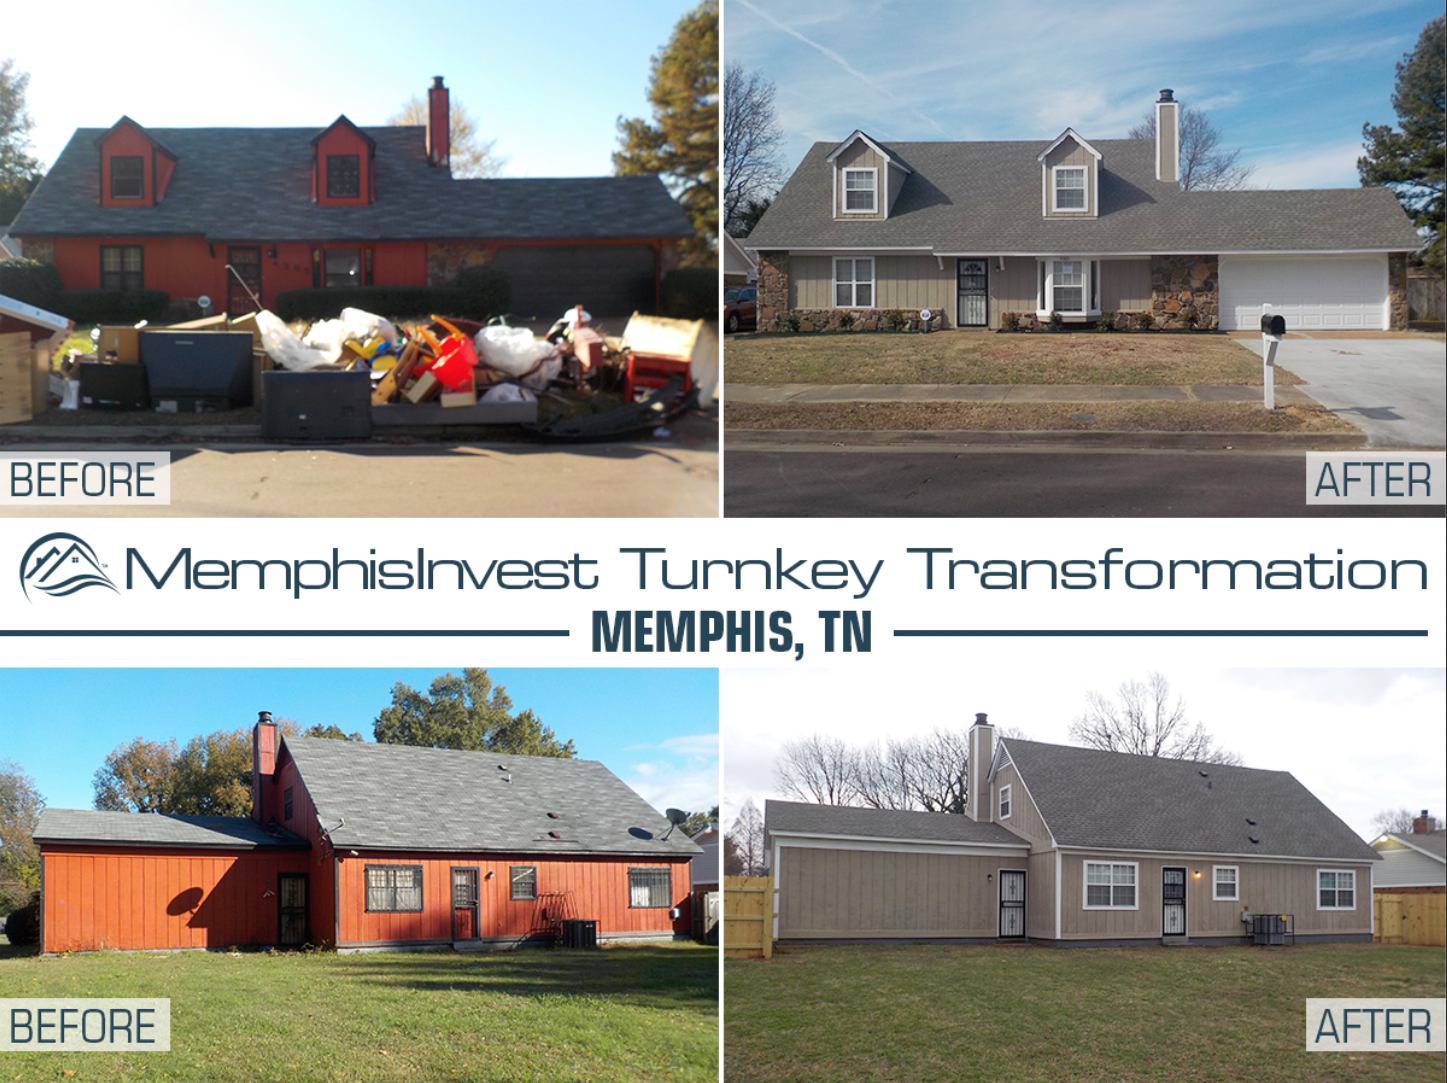 Memphis_Turnkey_Transformation